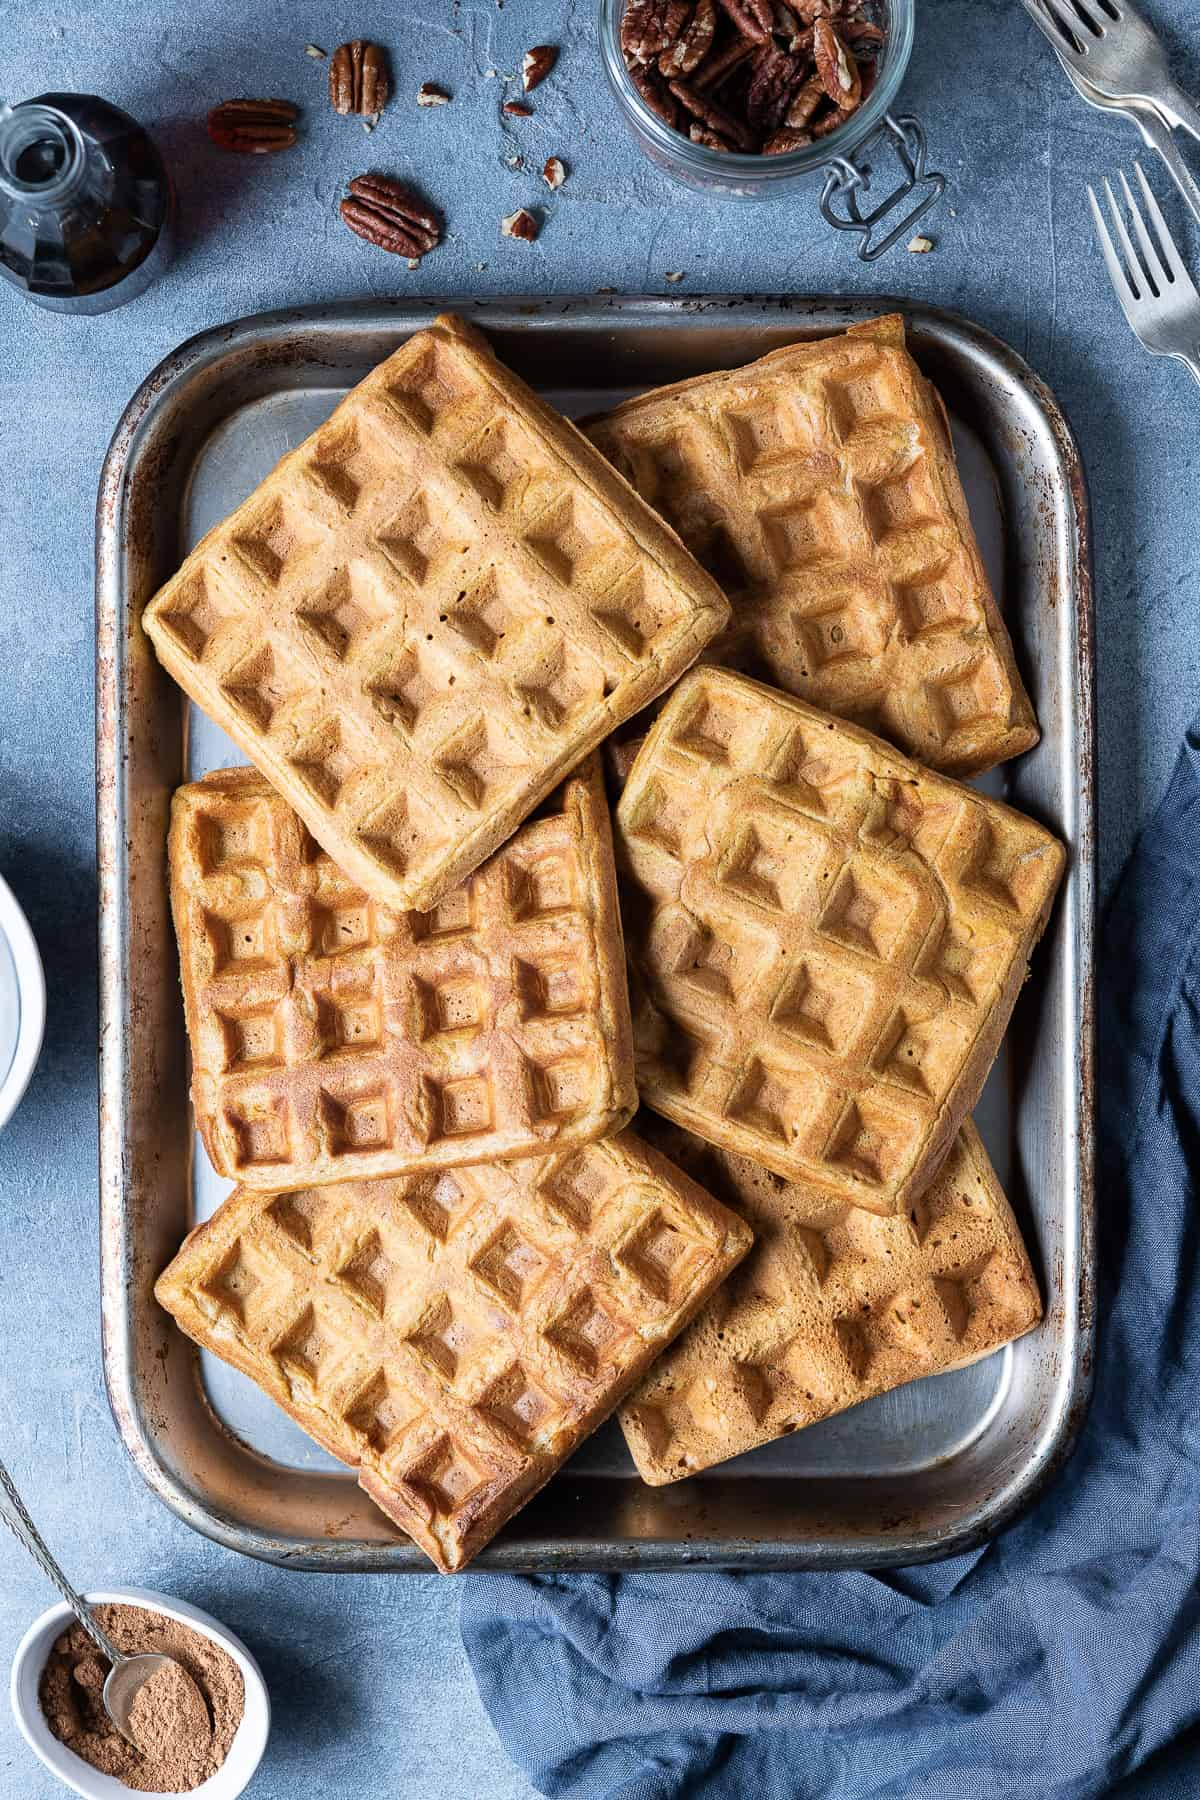 Pumpkin waffles on a metal baking tray on a grey background.